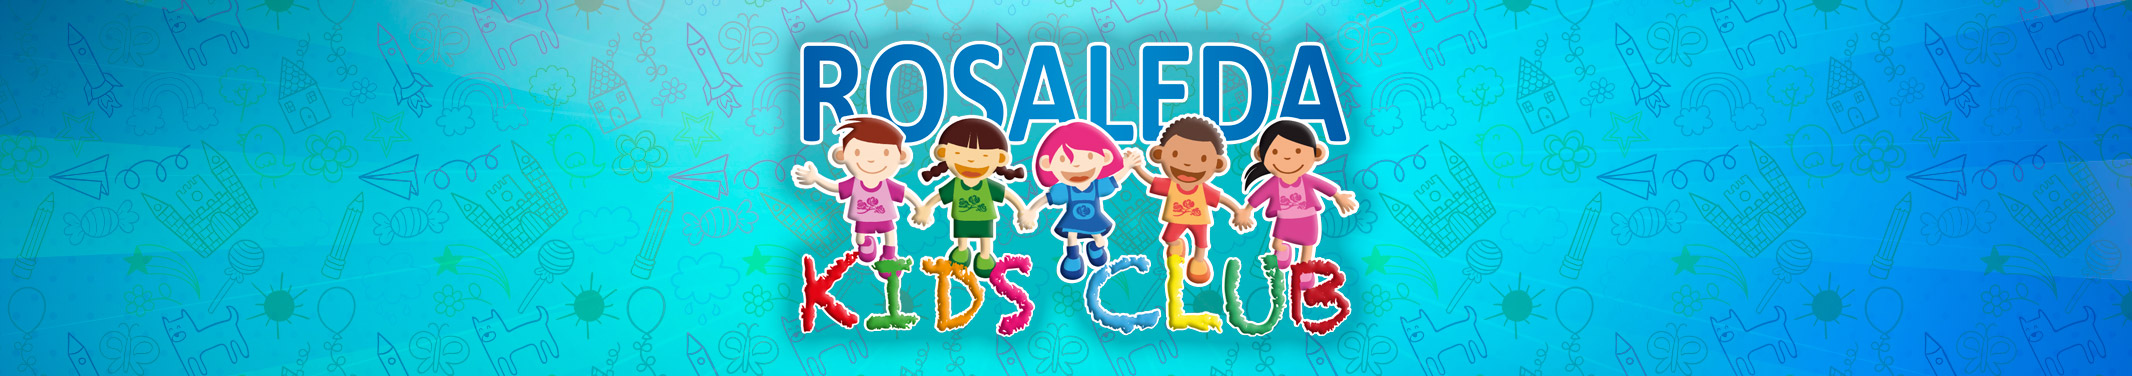 ROSALEDA KIDS CLUB